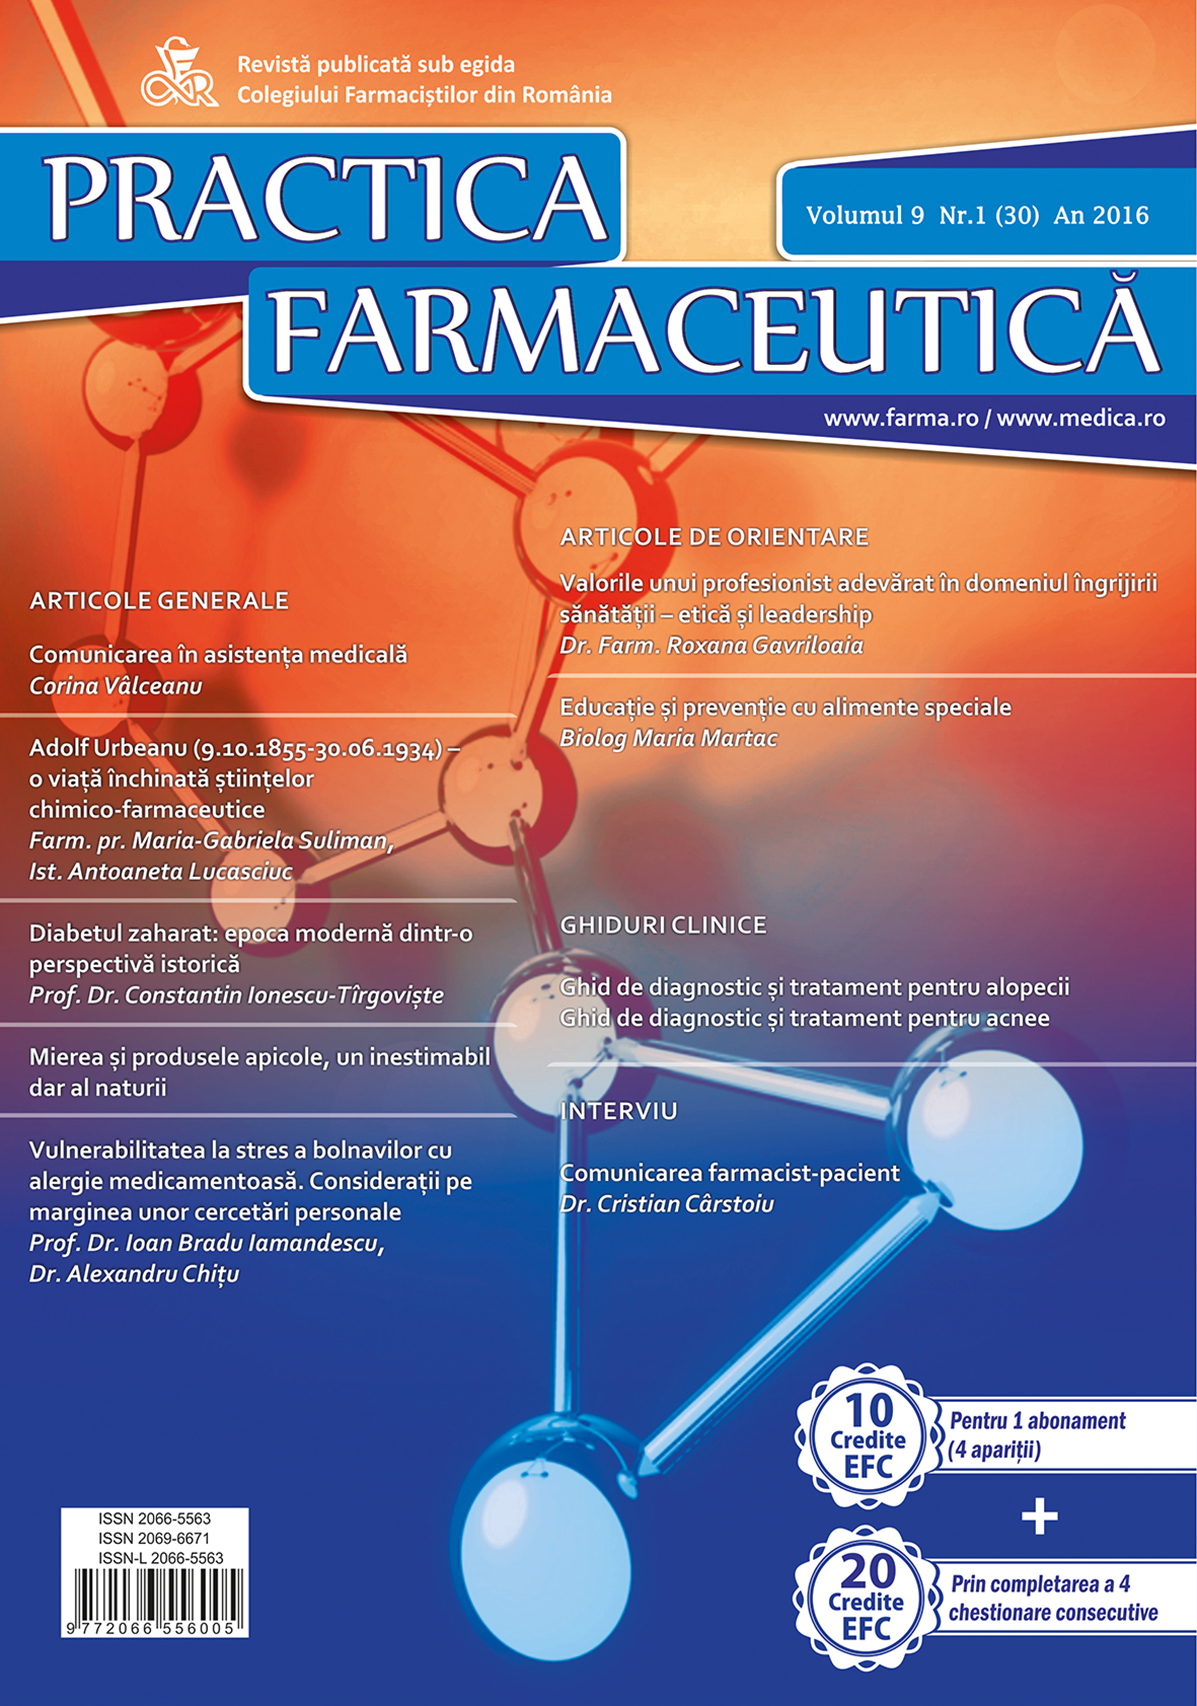 Revista Practica Farmaceutica, Vol. 9, Nr. 1 (30), 2016